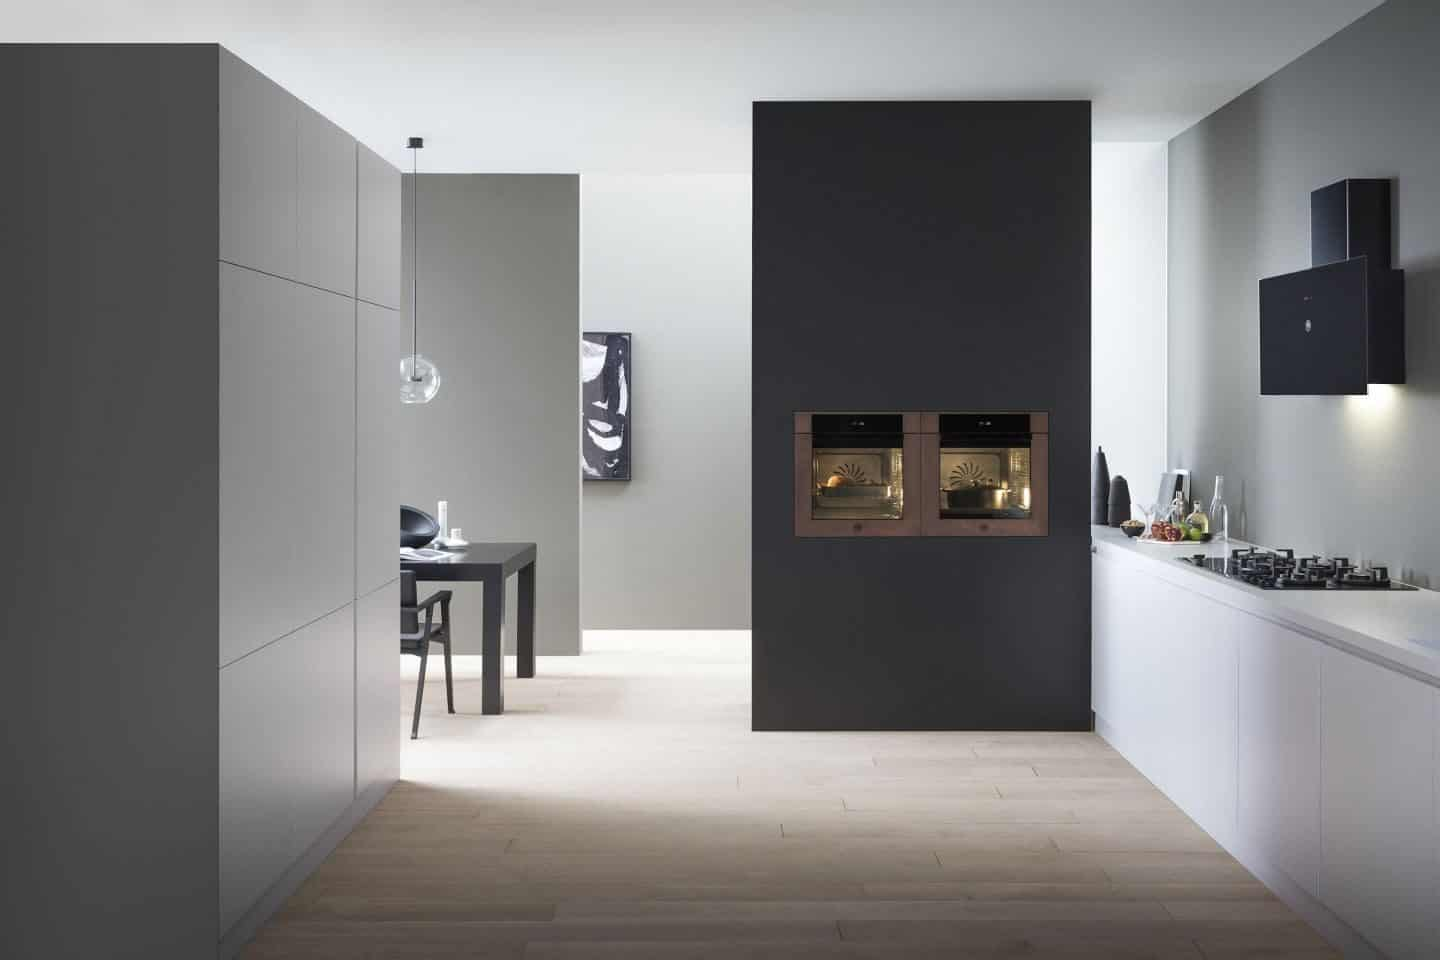 Kitchen Design Trends - Built-in Appliances from Bertazzoni's Modern Series